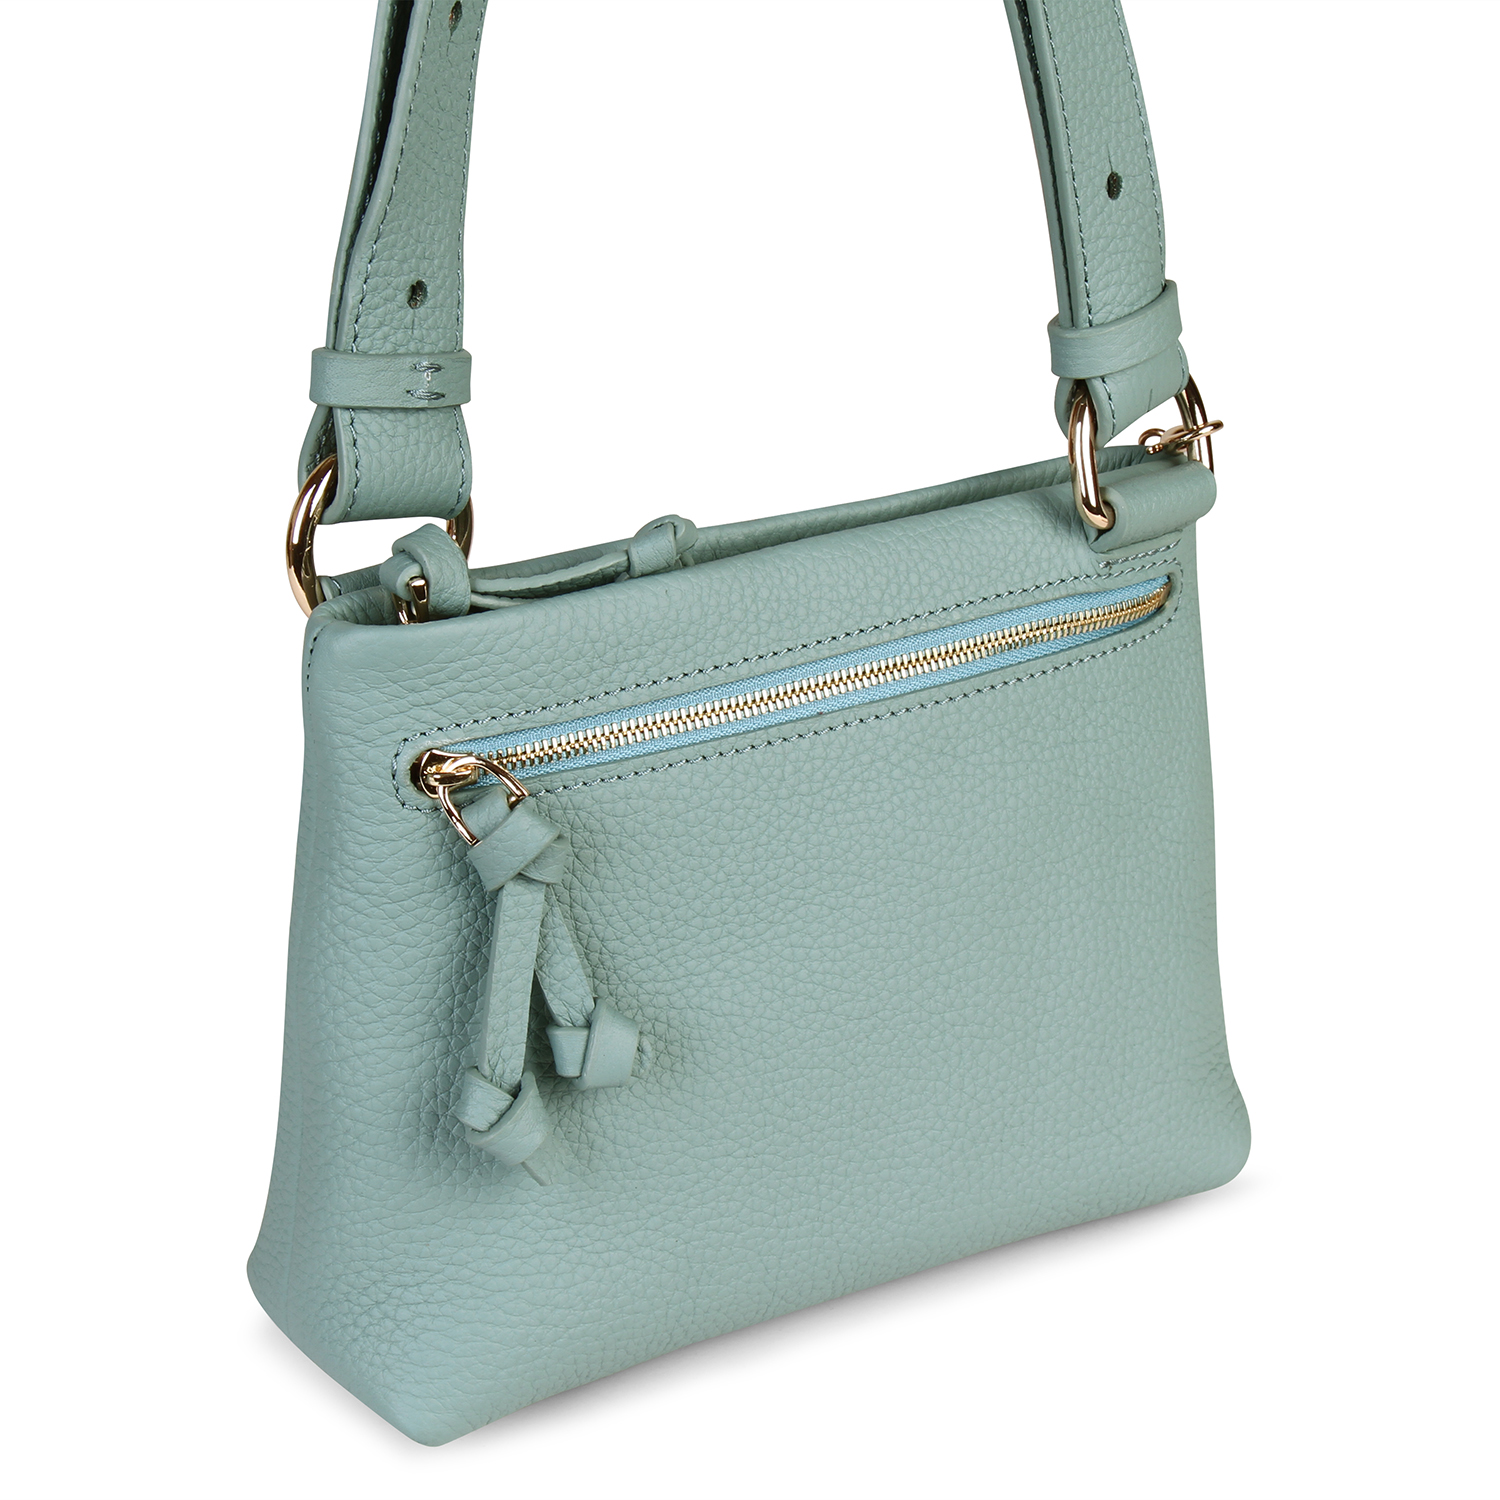 Mini Mayfair Shoulder Bag - Blue by Esin Akan on curated-crowd.com